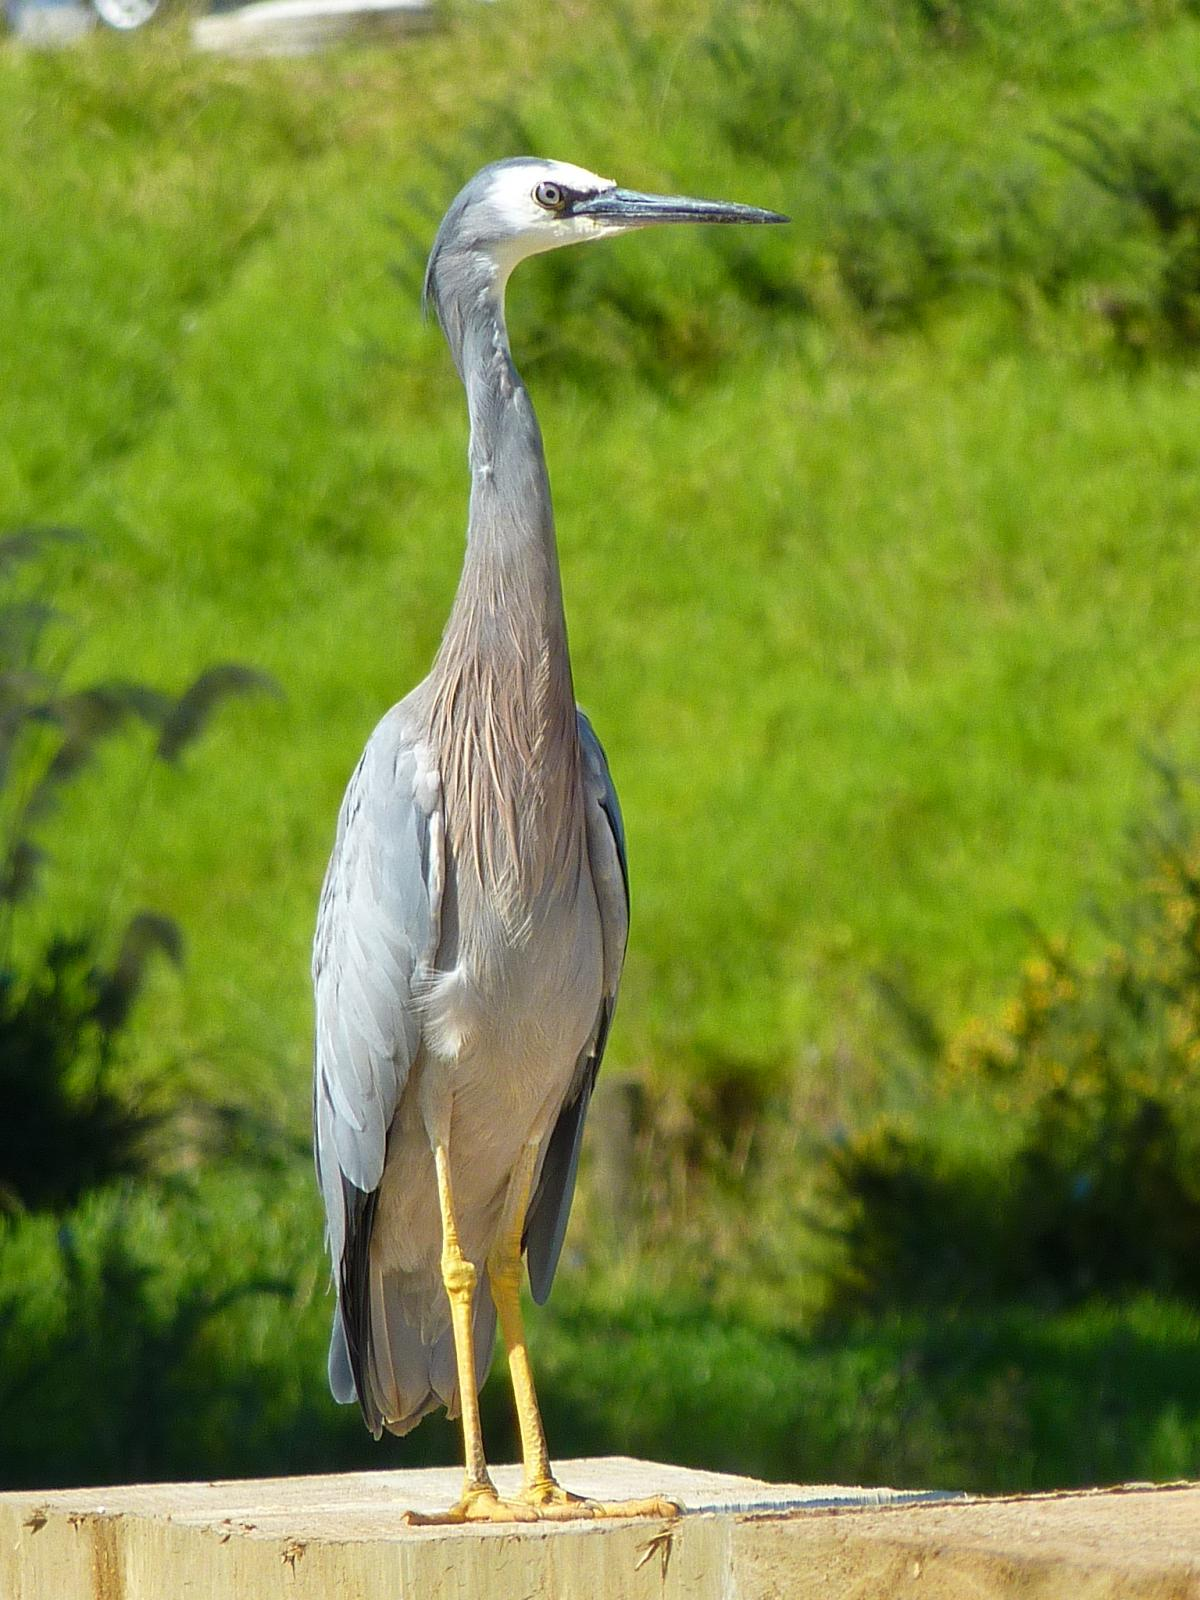 White Faced Heron Facts Image · White-faced Heron